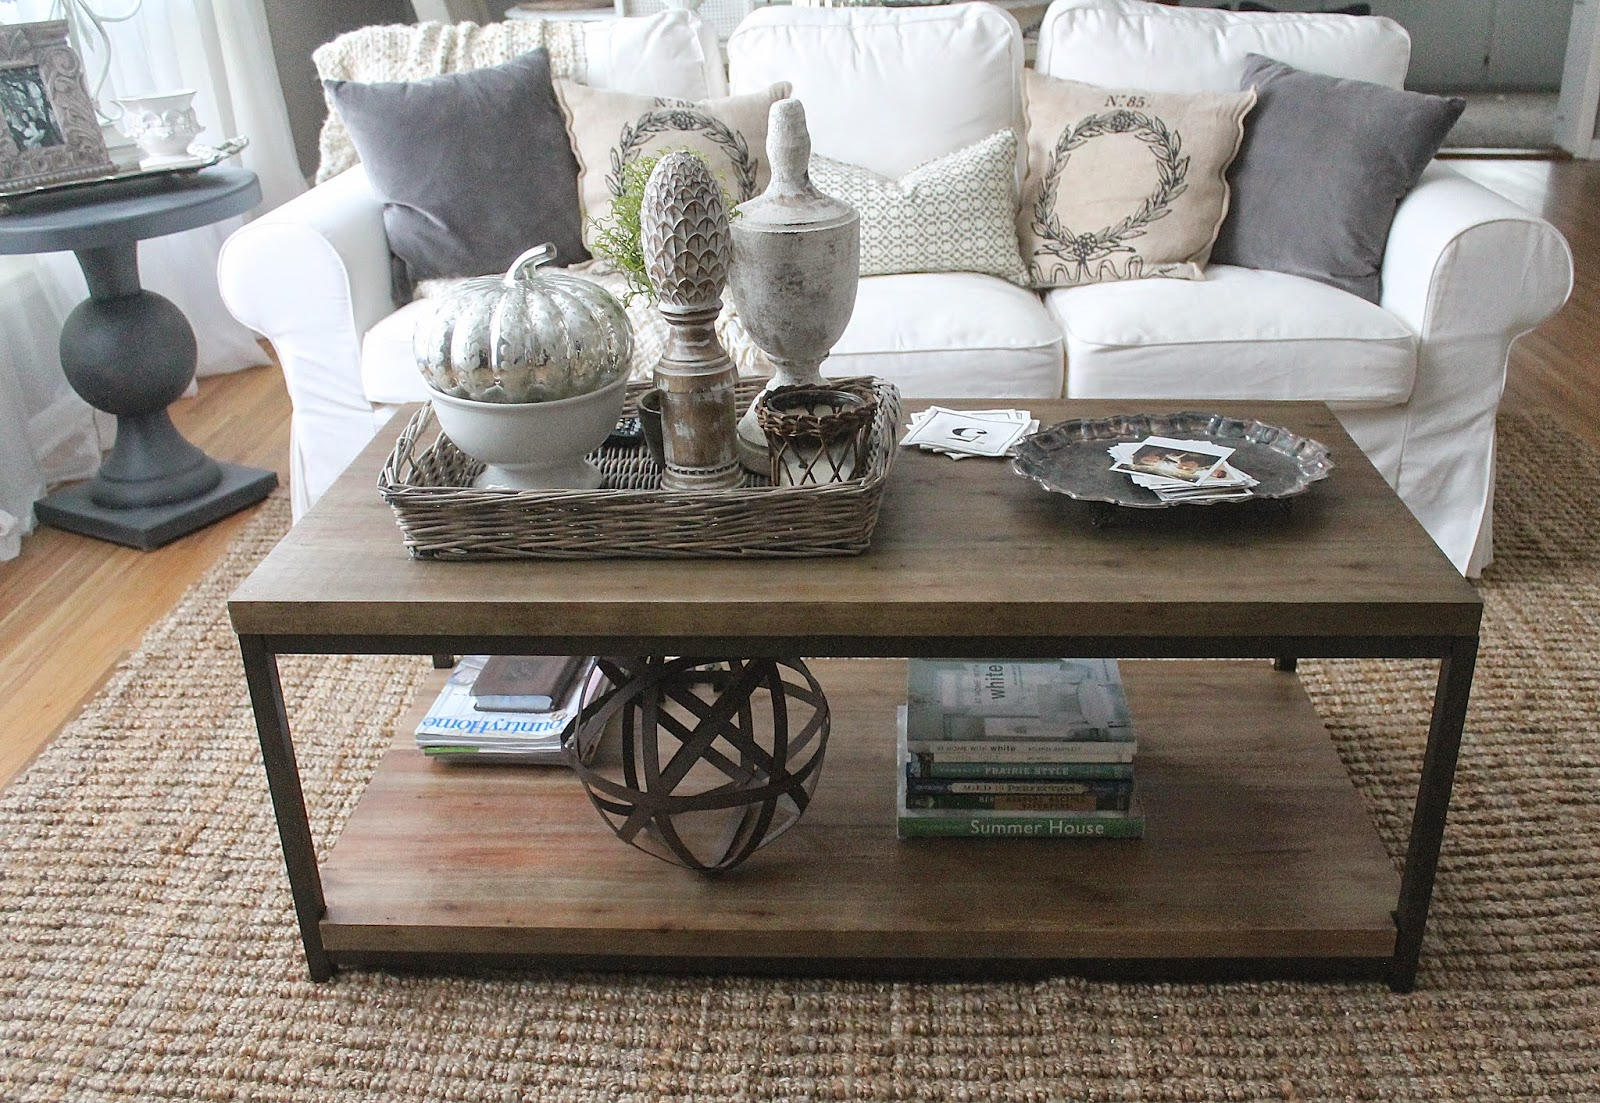 How To Style A Coffee Table 12th and white: 3 ways to style a coffee table